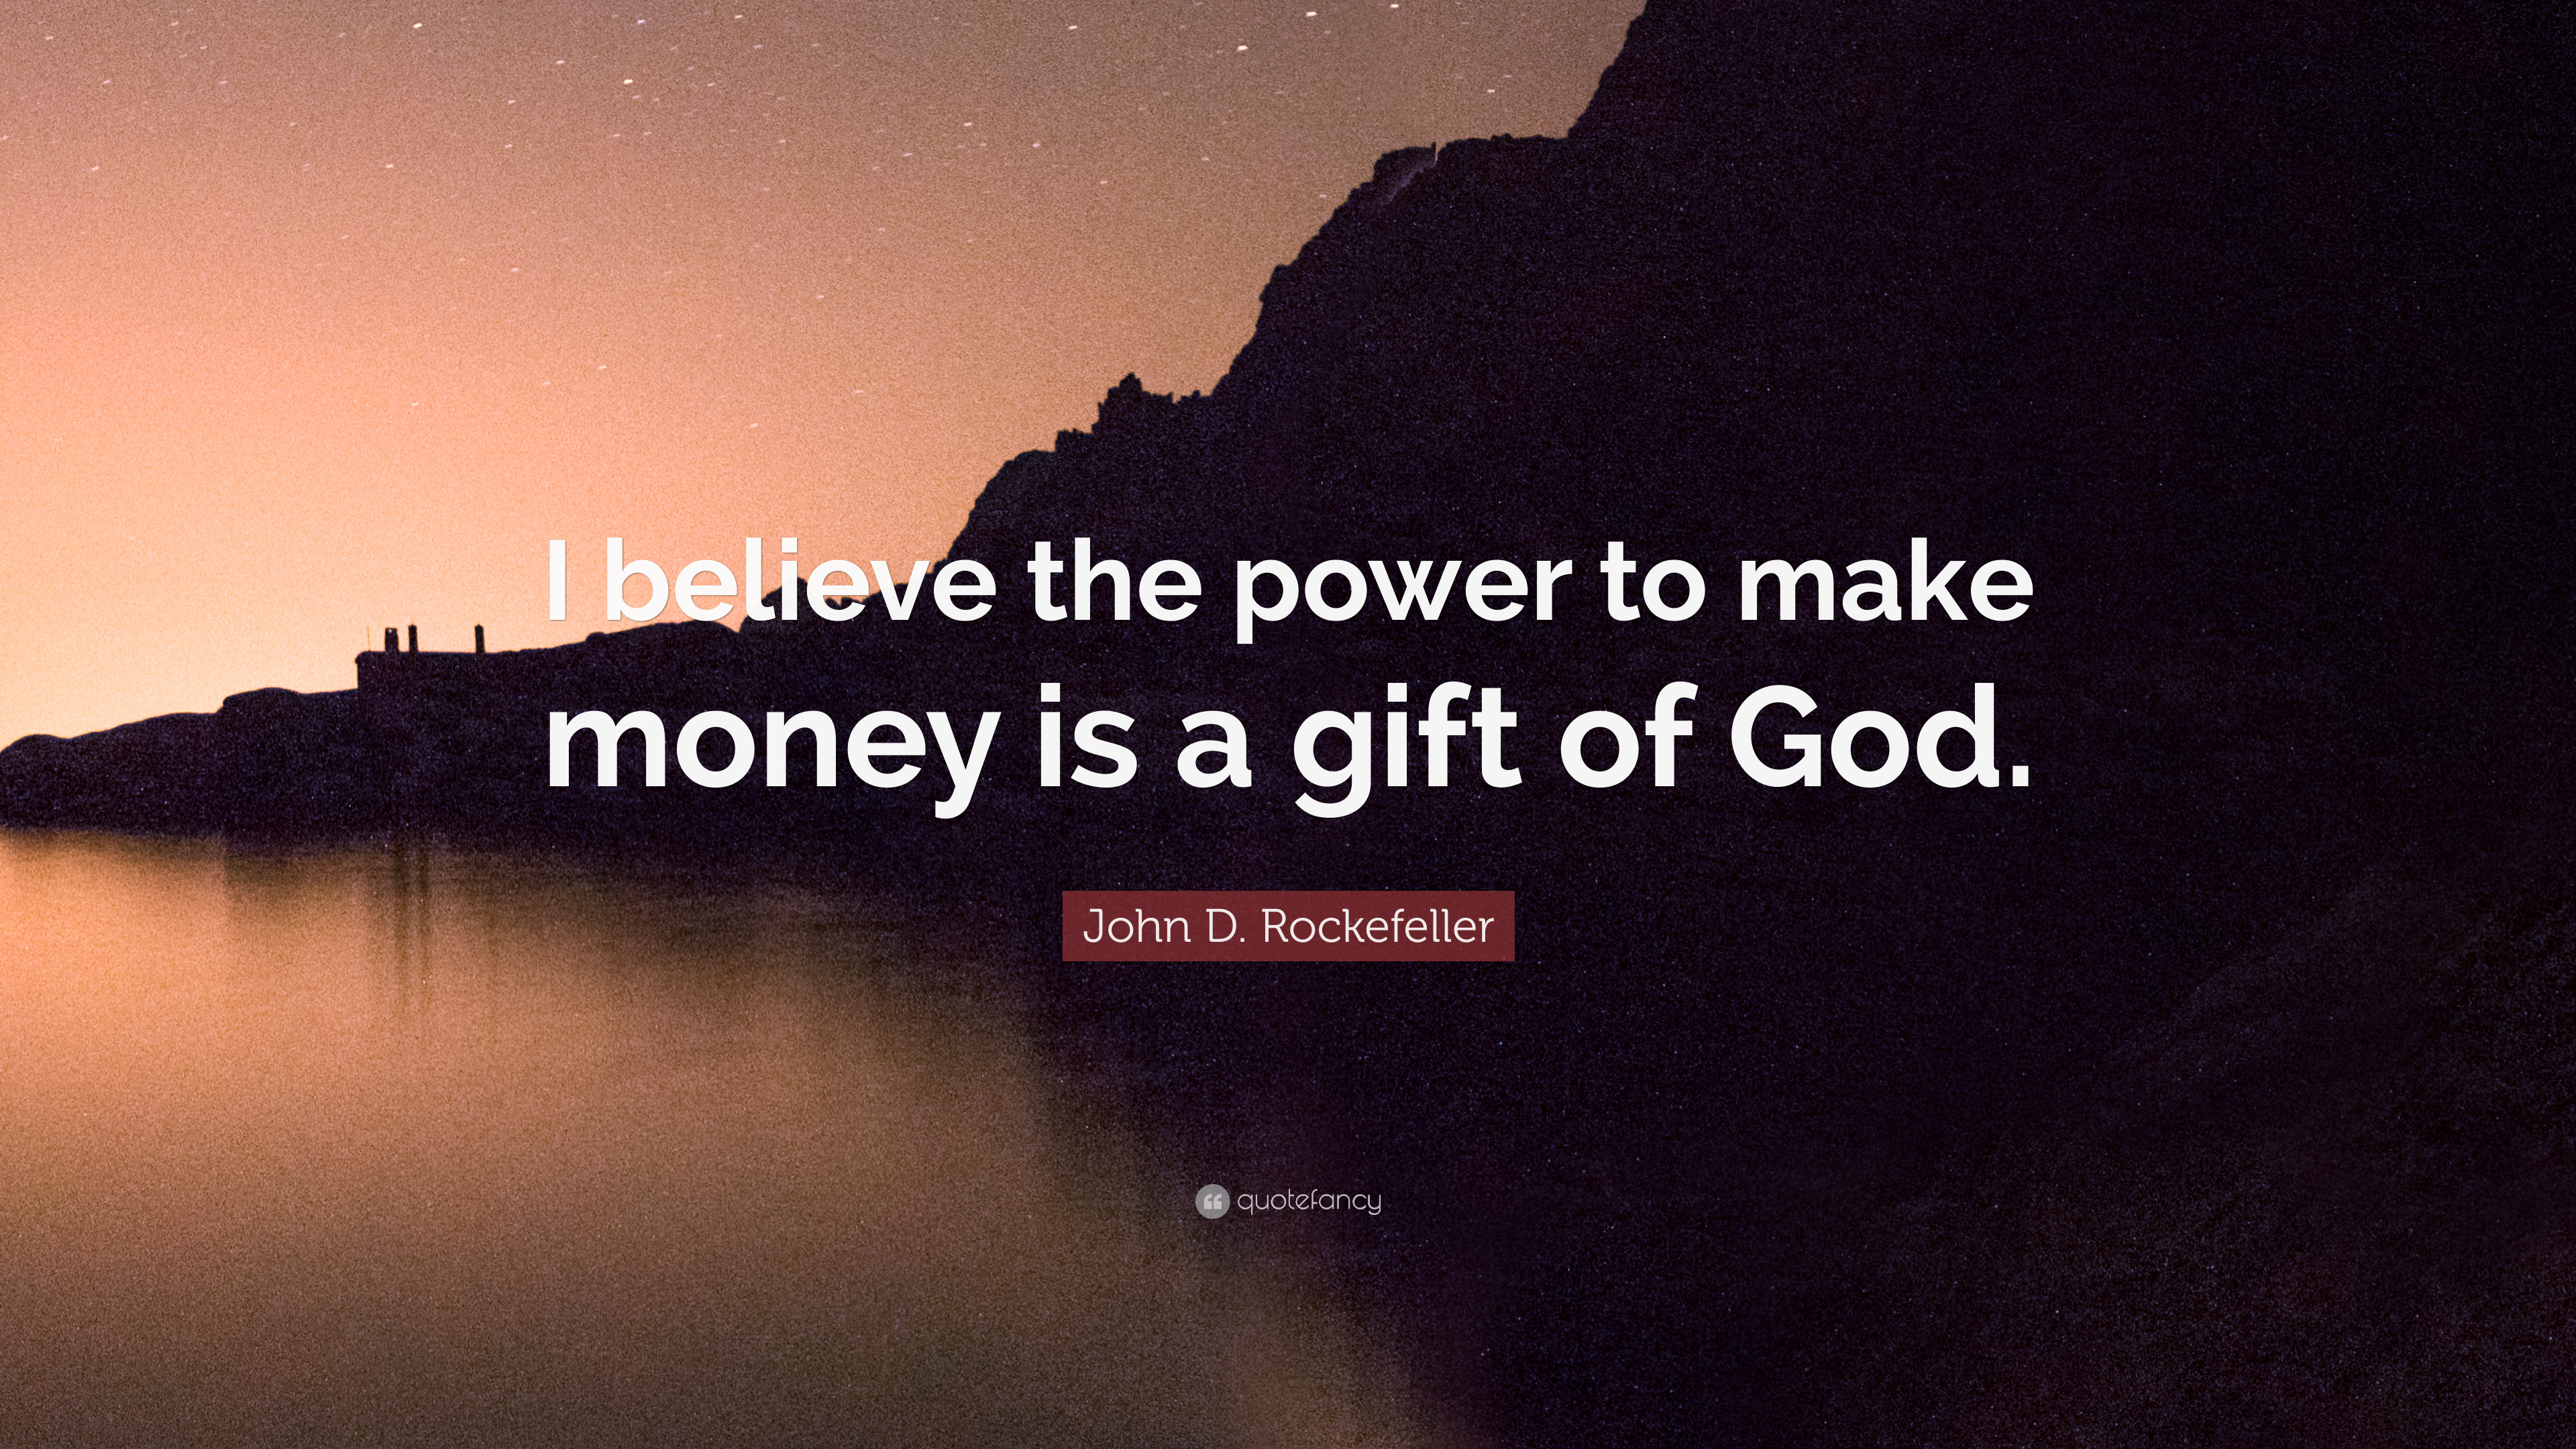 John D Rockefeller Quote I Believe The Power To Make Money Is A